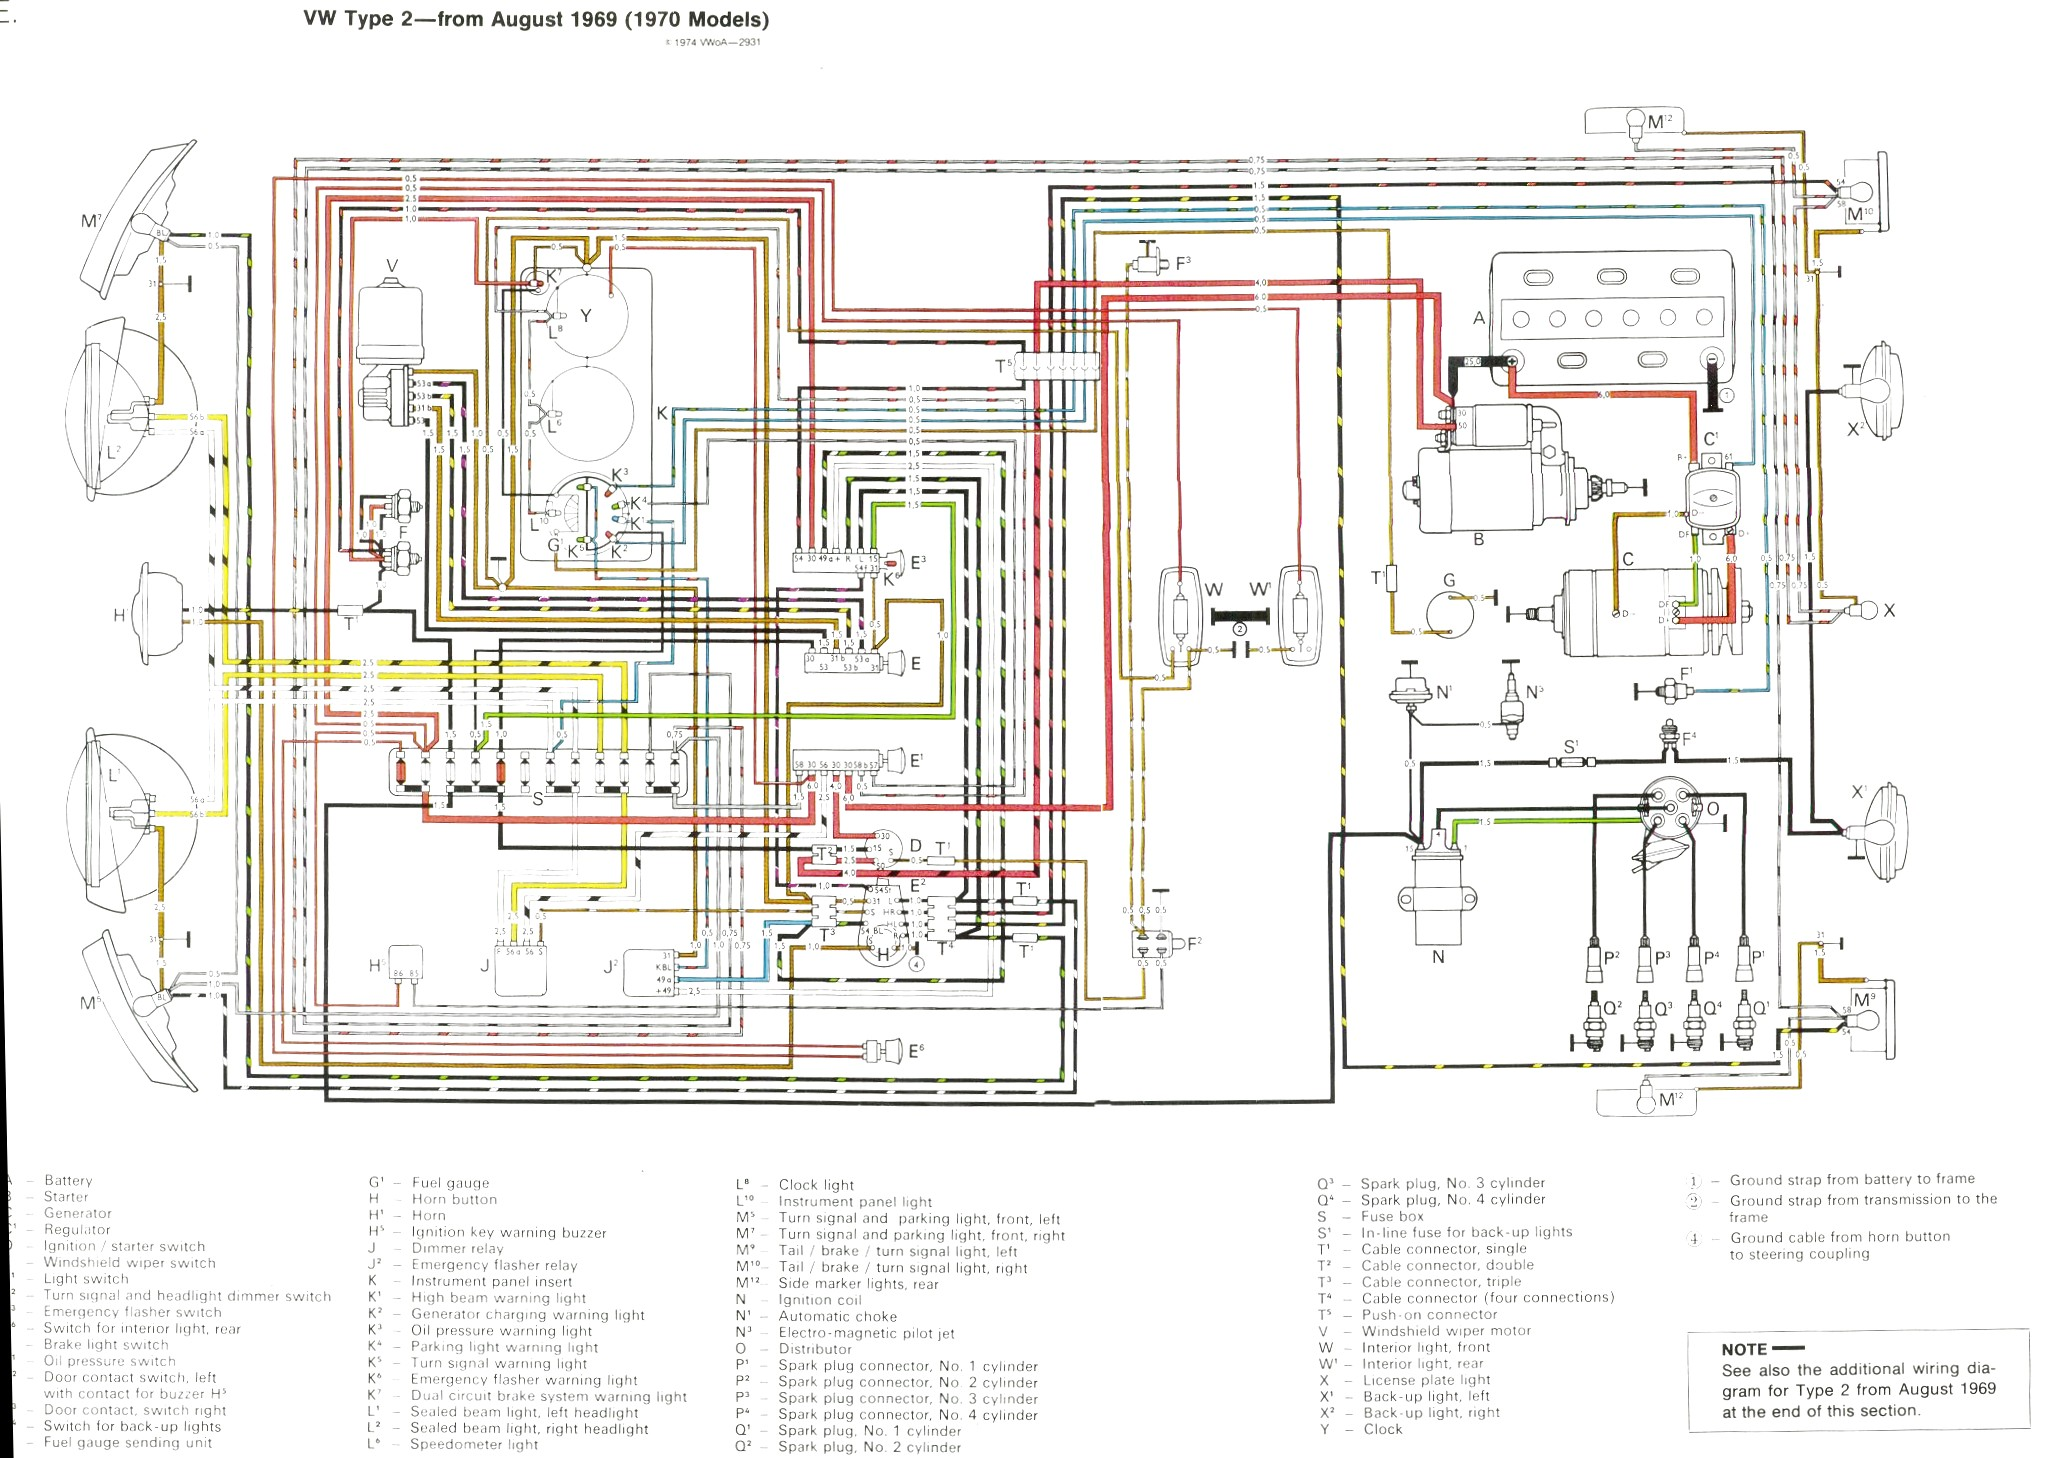 Vw Starter Wiring - Wiring Diagrams